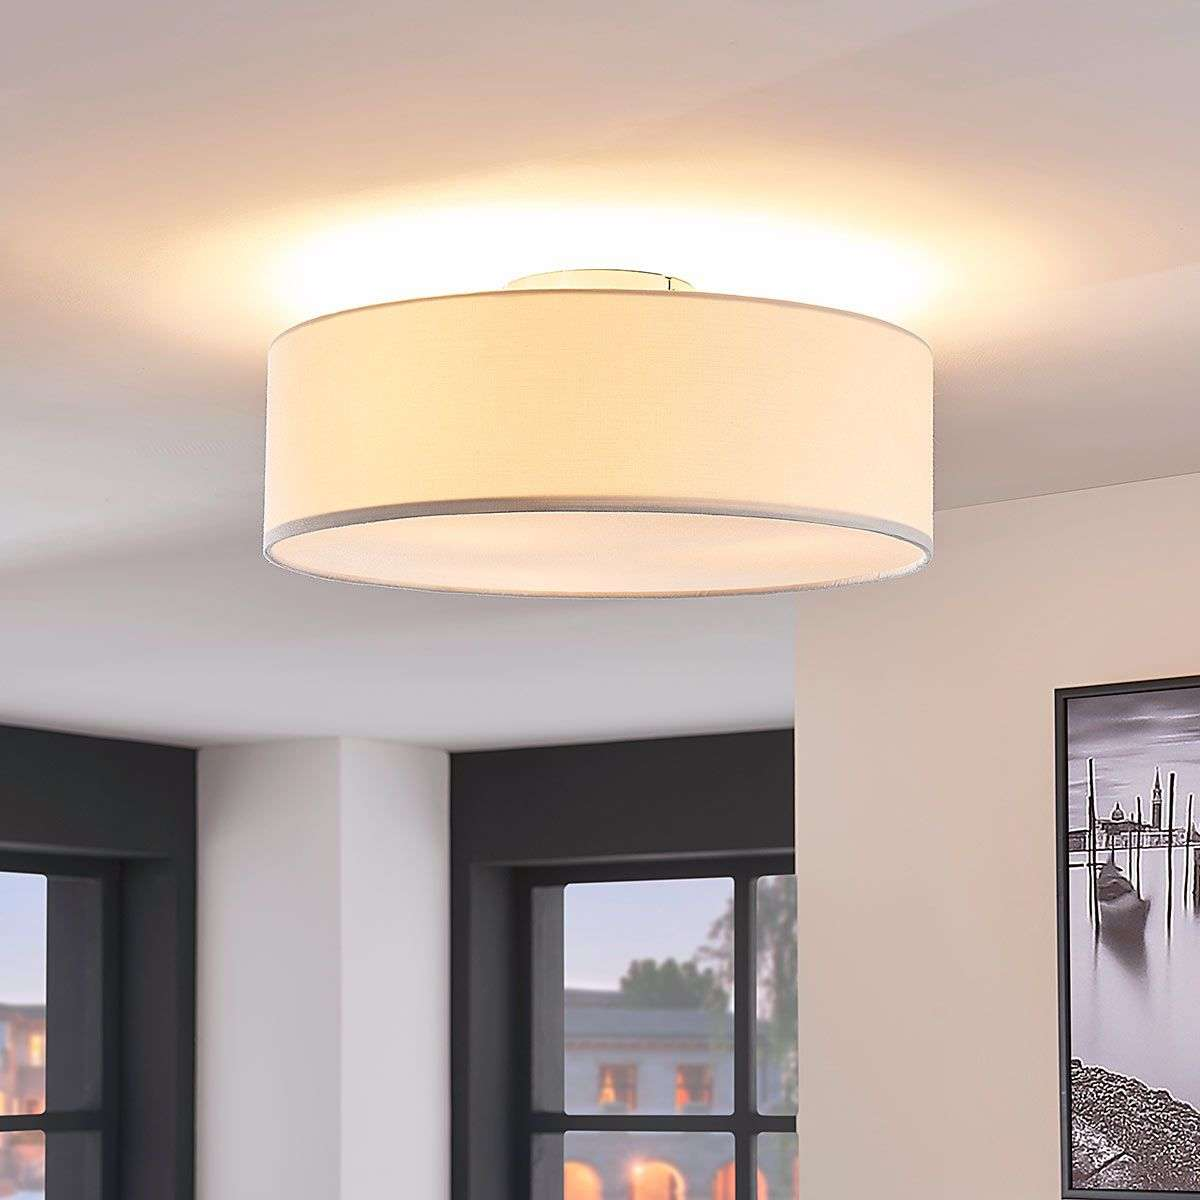 Cream coloured fabric ceiling light sebatin lights cream coloured fabric ceiling light sebatin aloadofball Image collections